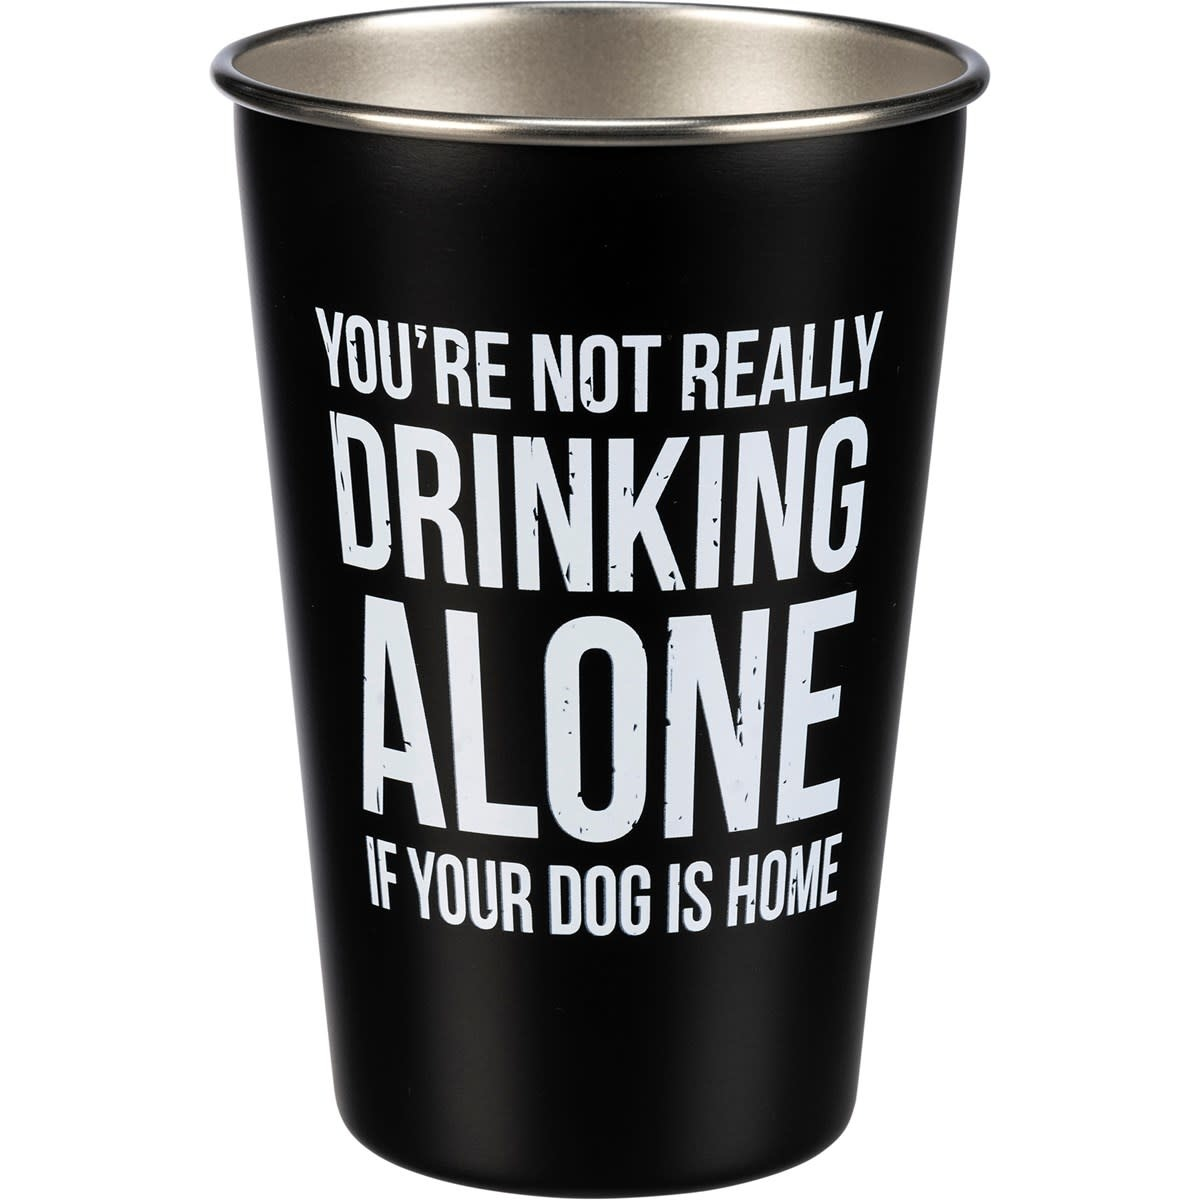 Pint Cup - It's Not Drinking Alone If Your Dog Is Home